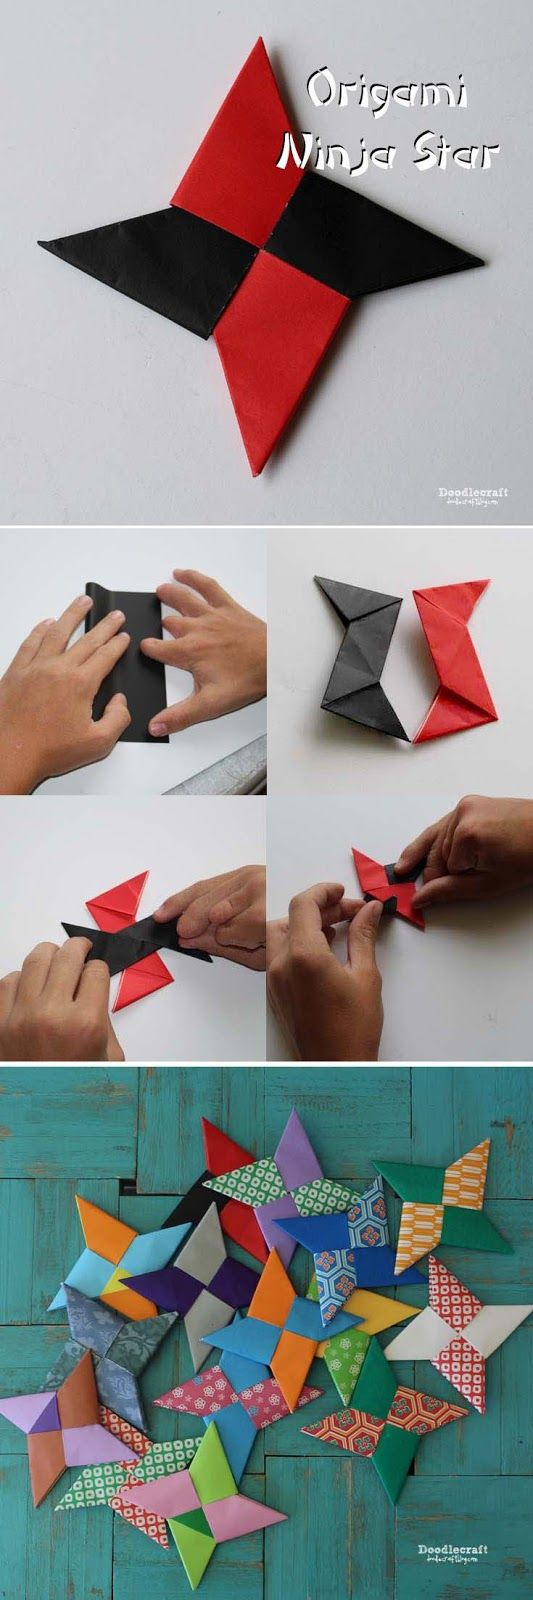 Ninja Star on Frog Crafts